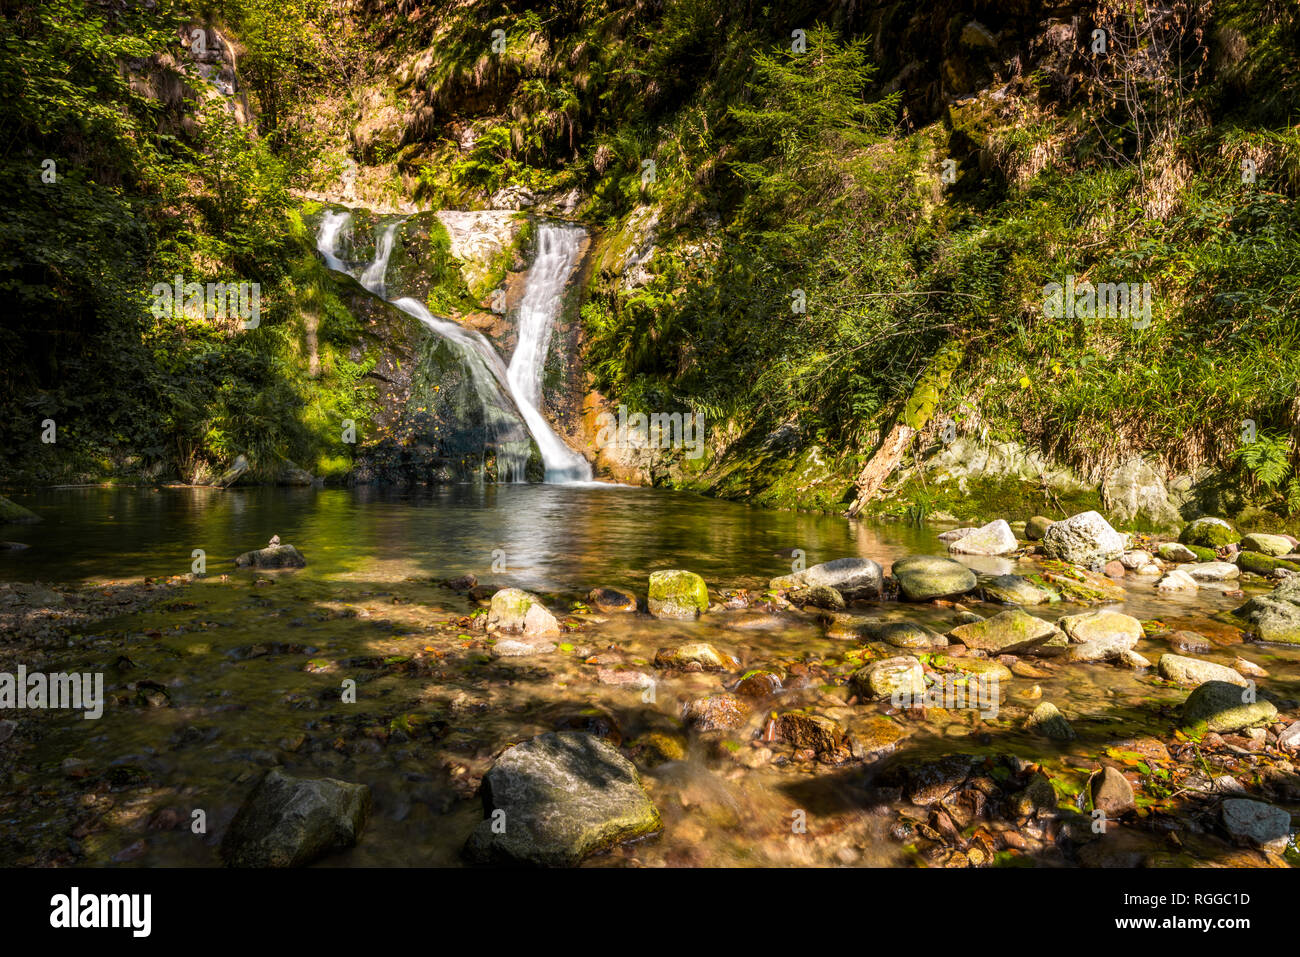 All Saints Waterfalls, town Oppenau, Northern Black Forest, Germany, lower section of the falls with basin - Stock Image